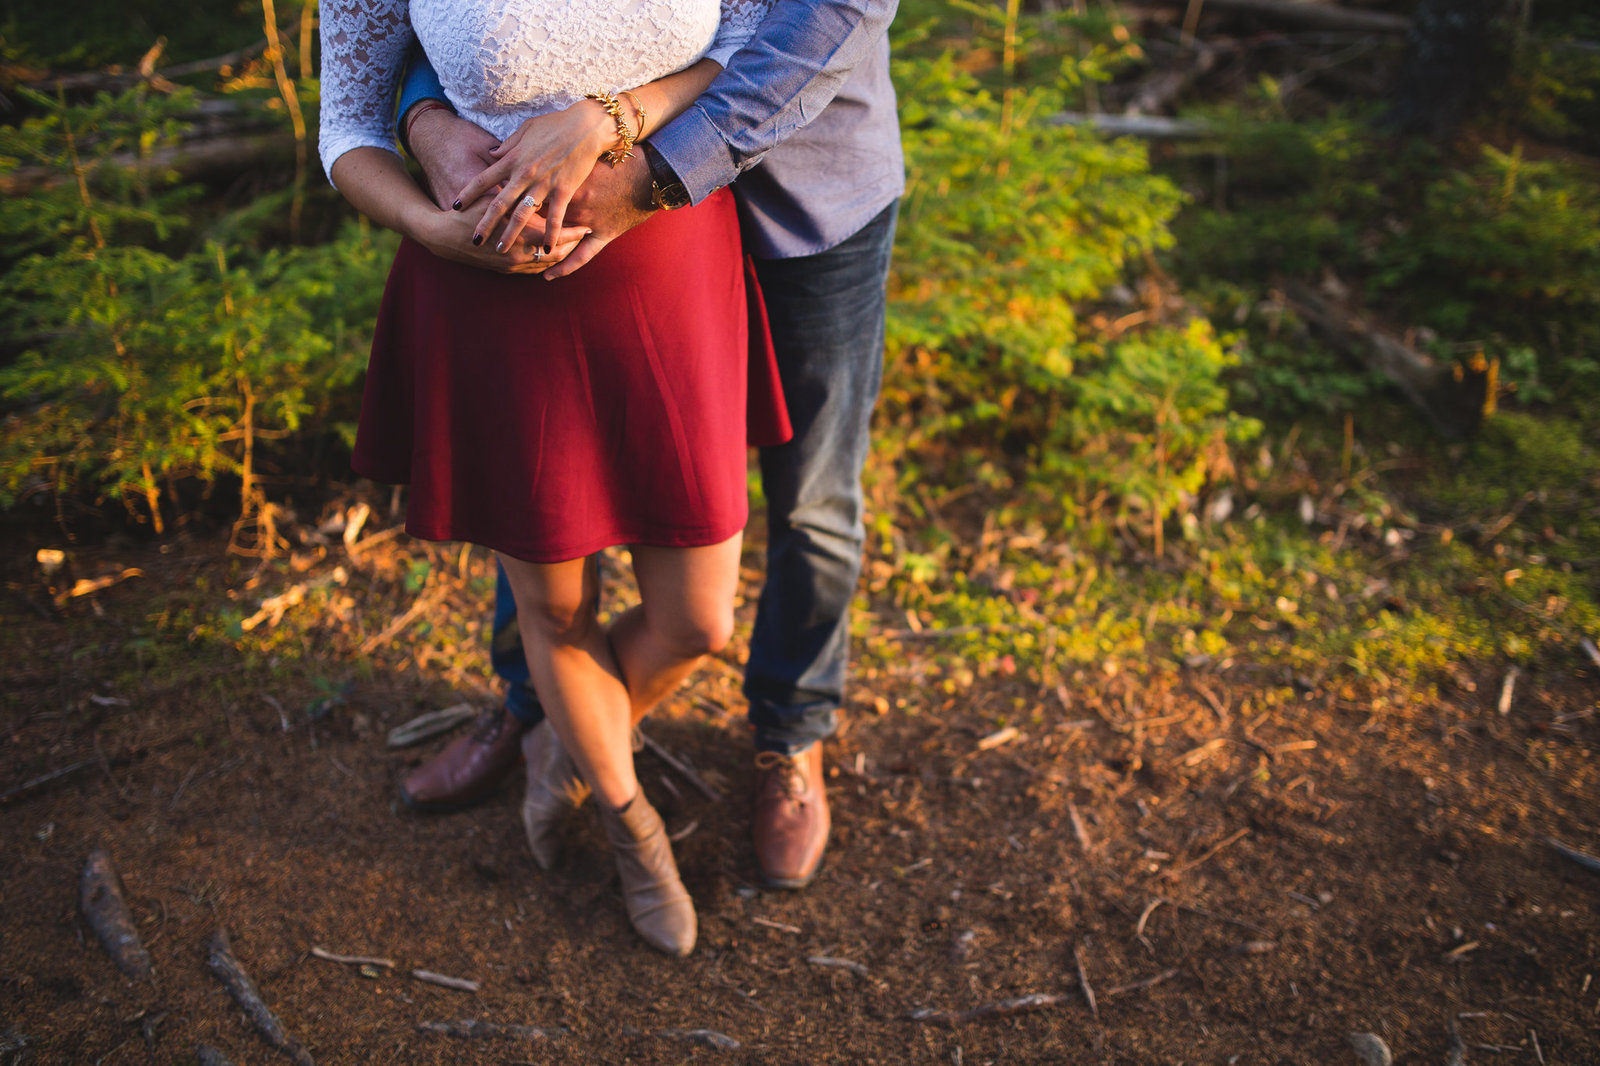 Saint John Engagement Photos by Jordan & Judith - Saint John NB Wedding Photographers and Filmmakers64